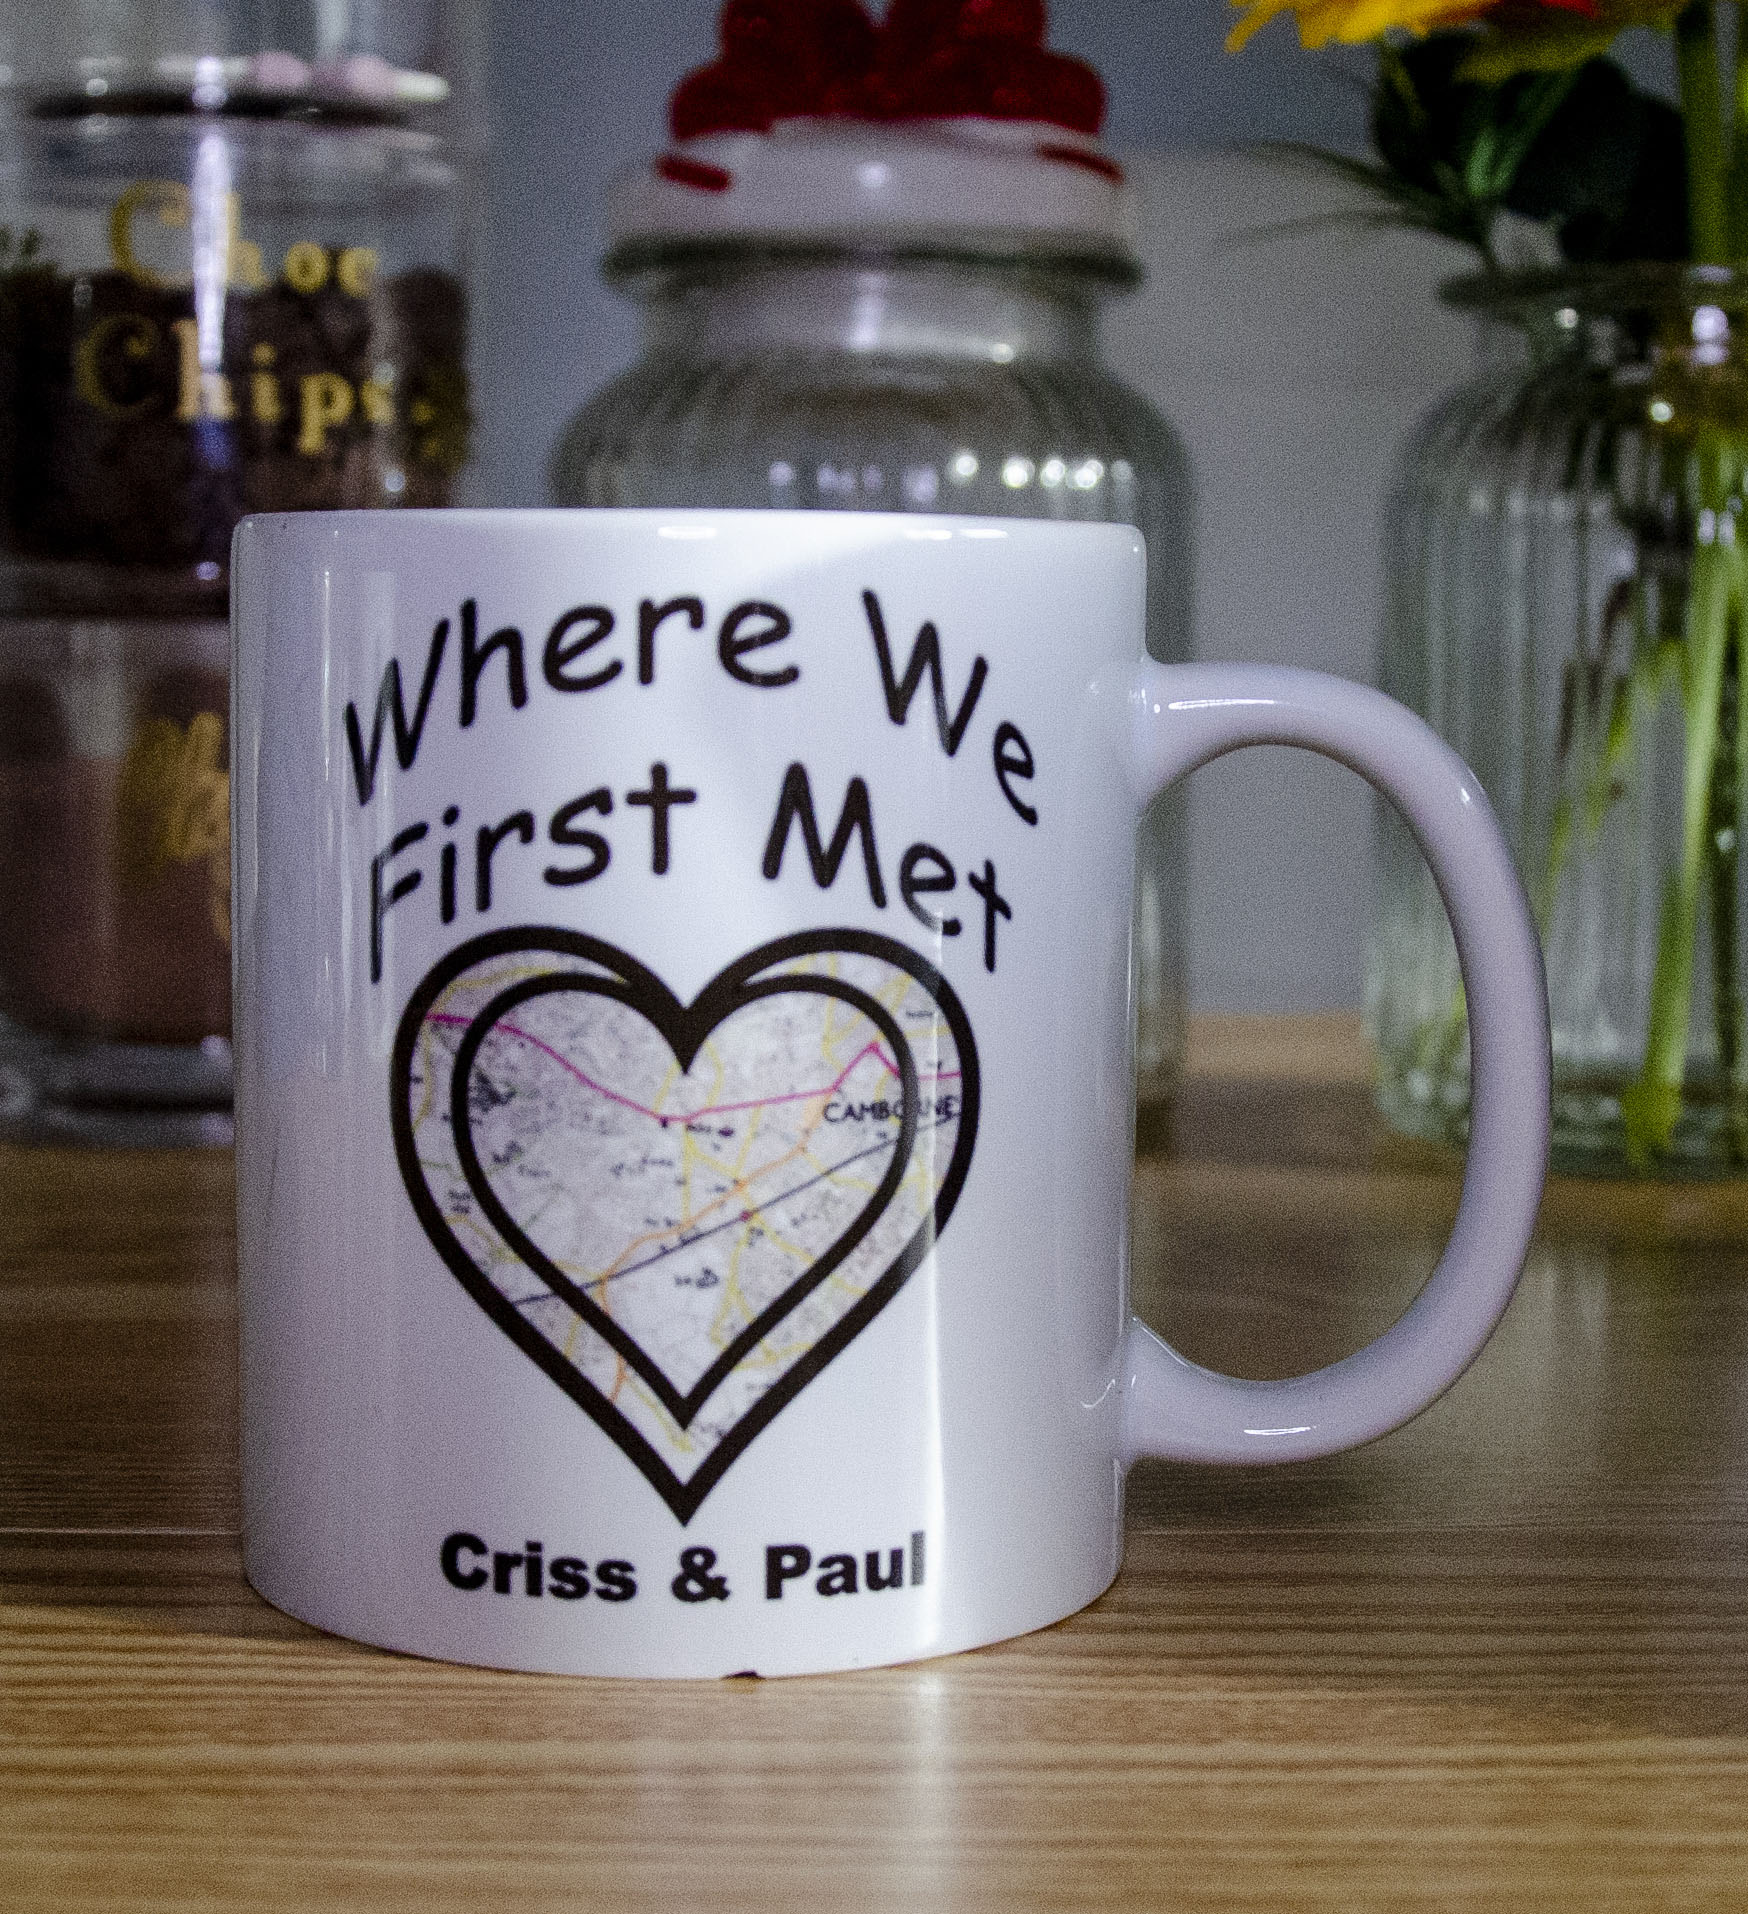 Personalised Valentine / Anniversary Mug 'Where We First Met' Contains Map or Image of where you first met